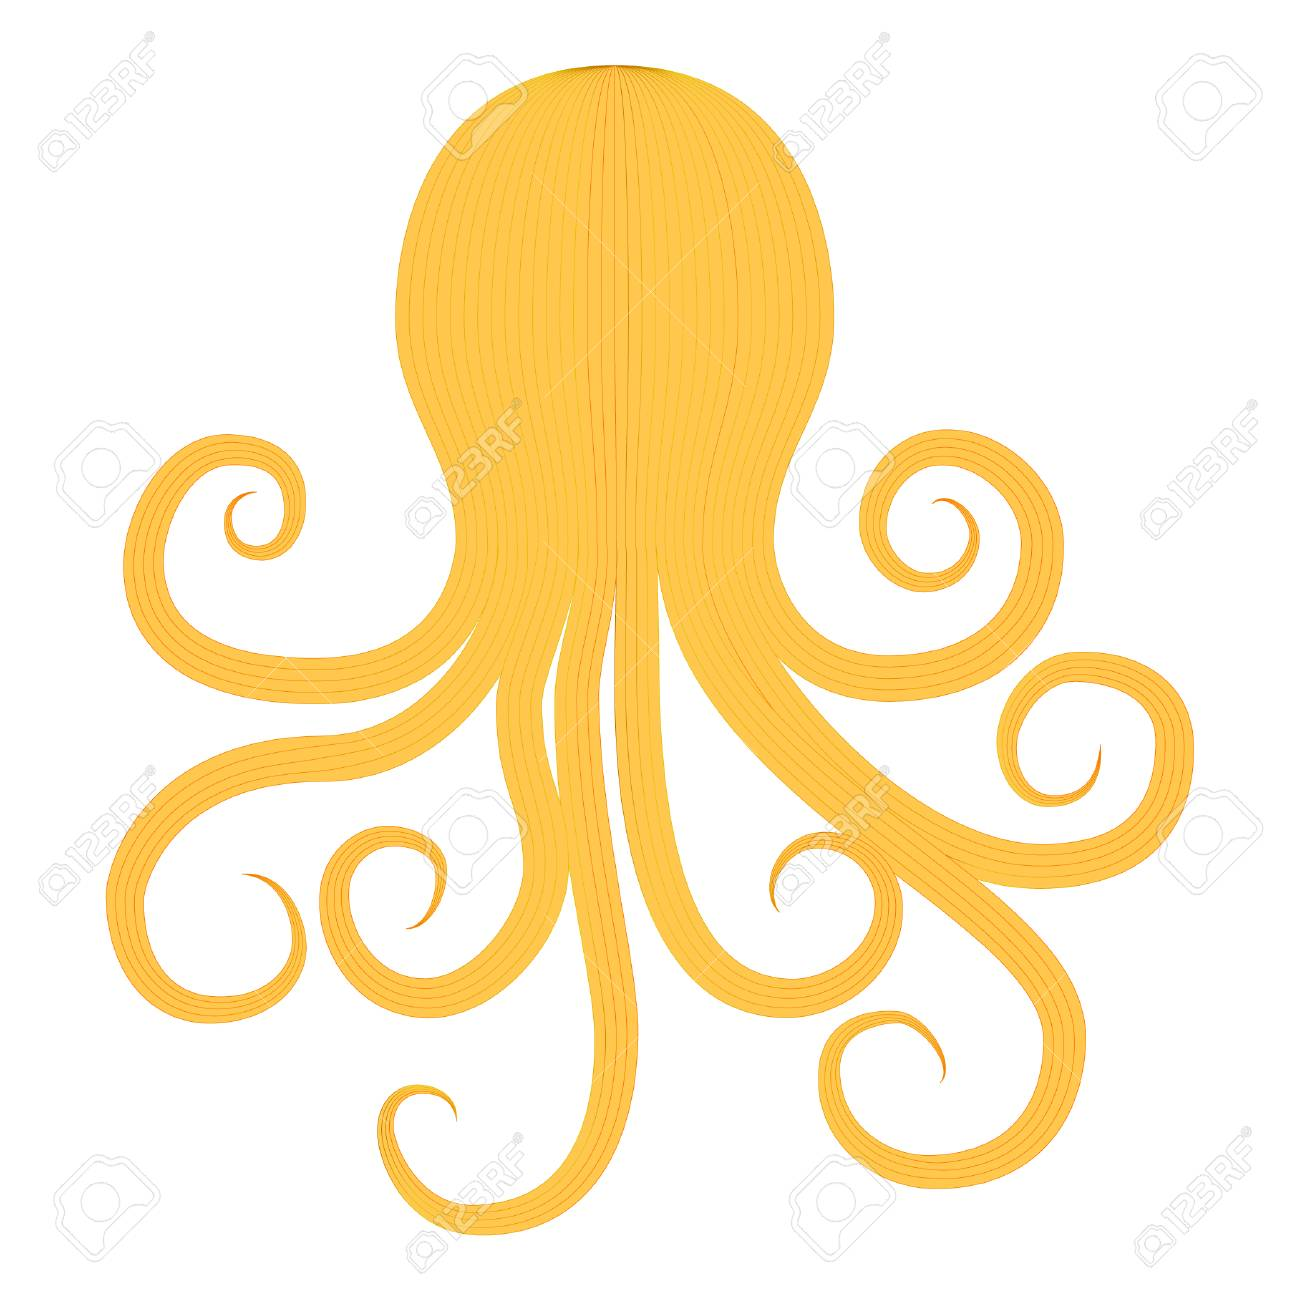 octopus silhouette in vintage style on transparent background royalty free cliparts vectors and stock illustration image 109757887 octopus silhouette in vintage style on transparent background